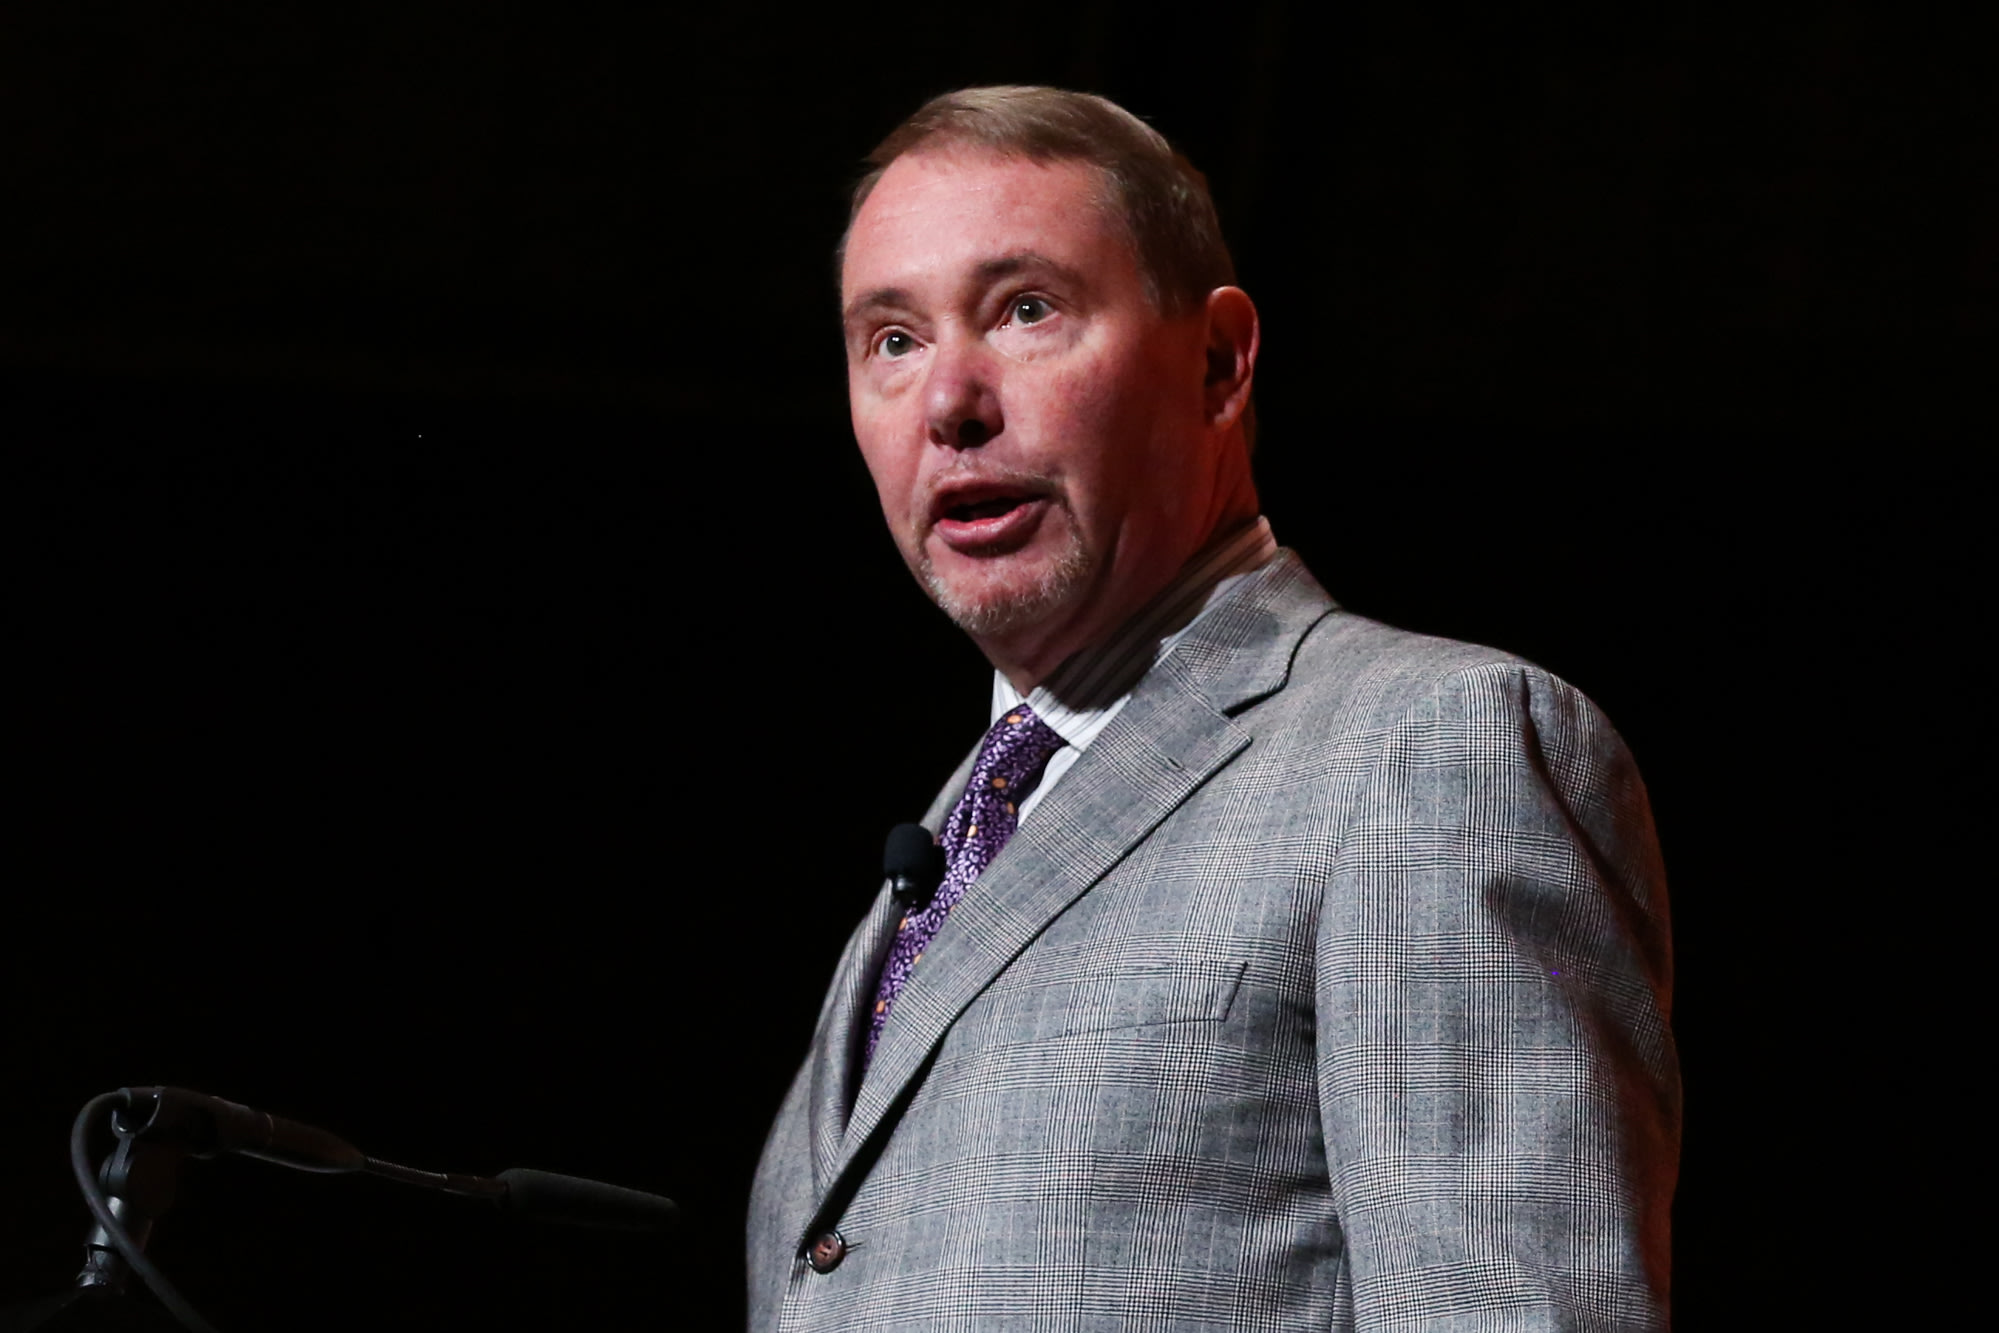 Jeffrey Gundlach says the coronavirus sell-off will worsen again in April, taking out the March low